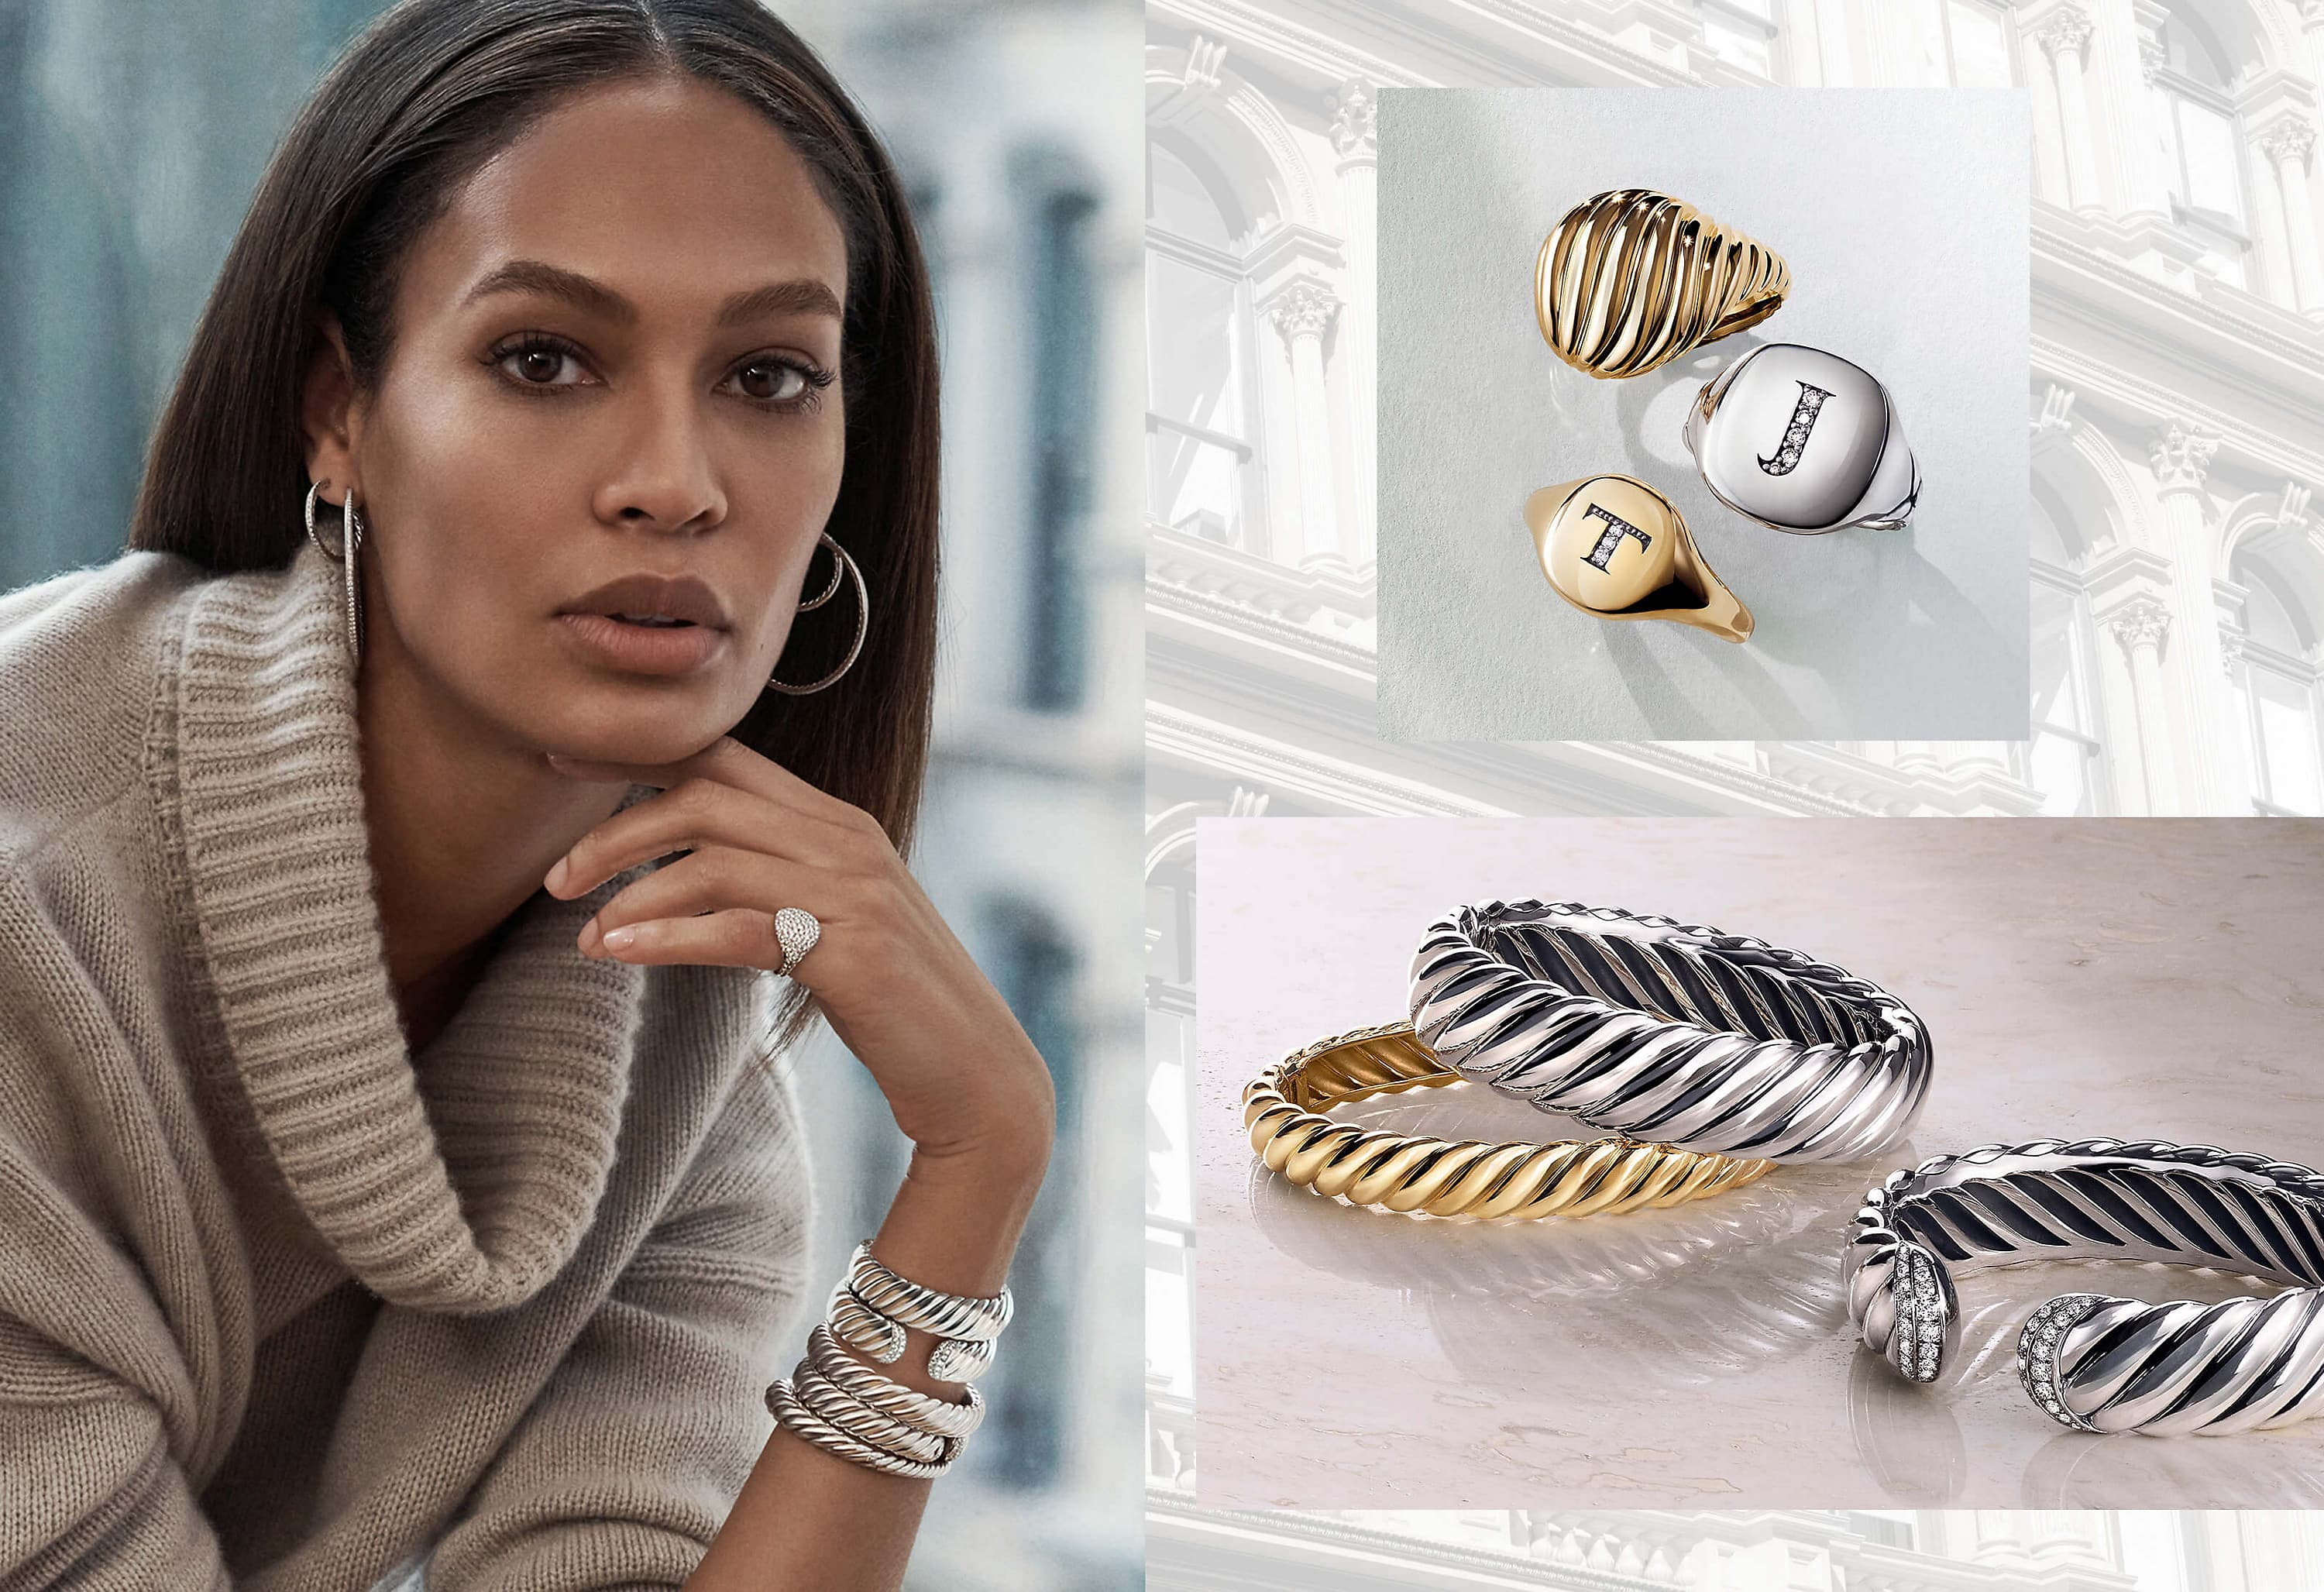 A photo collage shows an image of model Joan Smalls from the shoulders up to the left of a shot of David Yurman pinky rings above an image of three David Yurman Pure Form and Sculpted Cable bracelets. Joan Smalls is wearing a beige turtleneck sweater and David Yurman hoop earrings, a pinky ring and a stack of Sculpted Cable bracelets on one wrist. Her jewelry is crafted from sterling silver or 18K white gold with pavé diamonds. The other pinky rings and bracelets are crafted from sterling silver or 18K yellow gold with or without pavé diamonds.